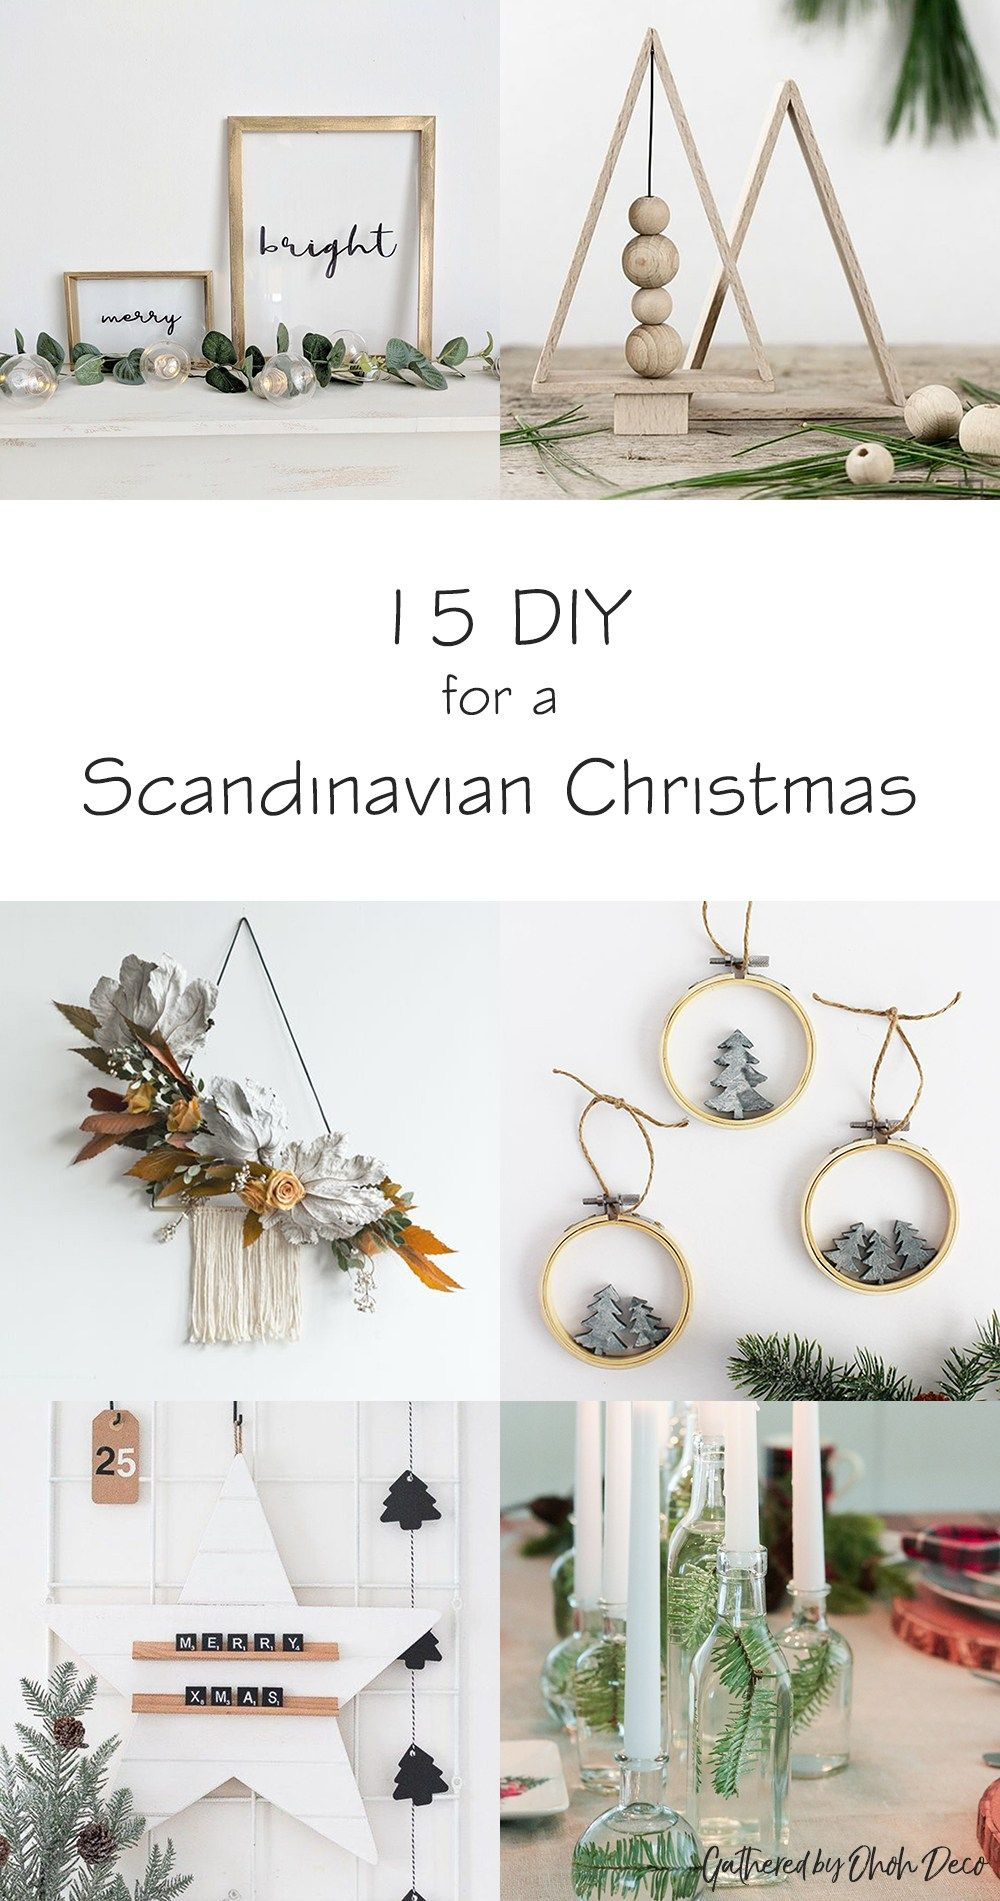 How To Create A Diy Scandinavian Christmas Decor Ohoh Deco In 2020 Scandinavian Christmas Decorations Scandinavian Christmas Christmas Decorations